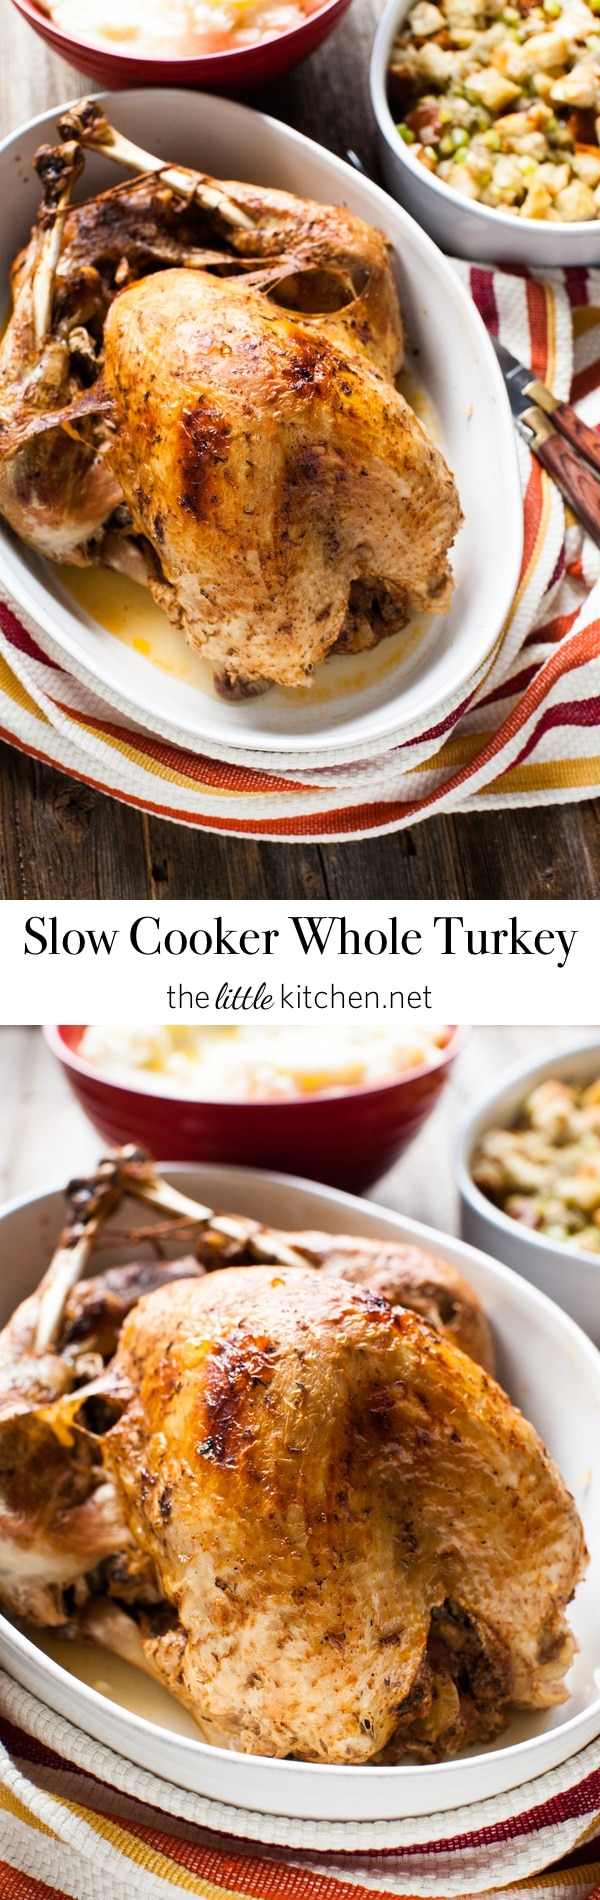 Slow Cooker Whole Turkey from thelittlekitchen.net